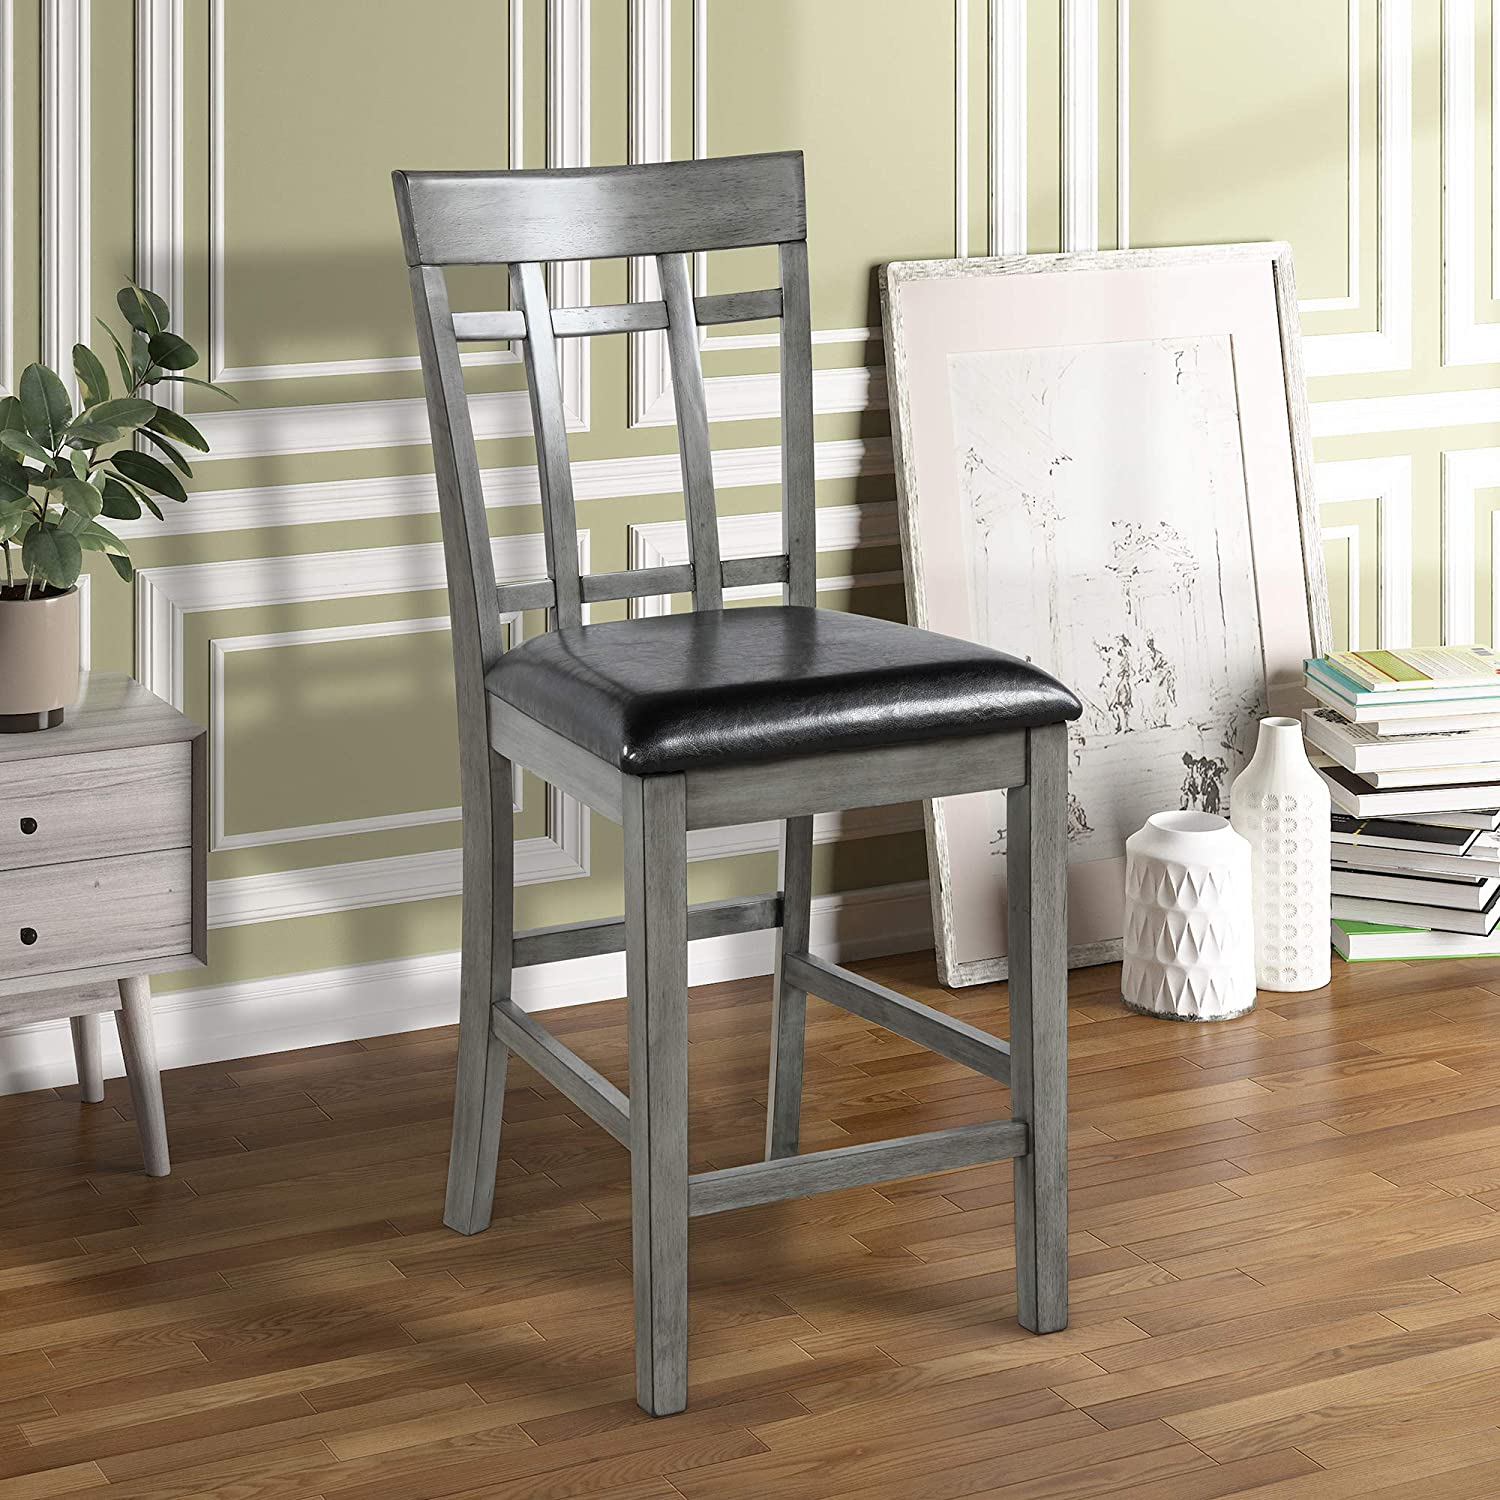 Harper Bright Designs 5 Piece Vintage Rectangular Counter Height Bar Table with 4 Chairs, Wood Dining Table and Chair Set for Dining Room, Pub and Bistro Antique Graywash